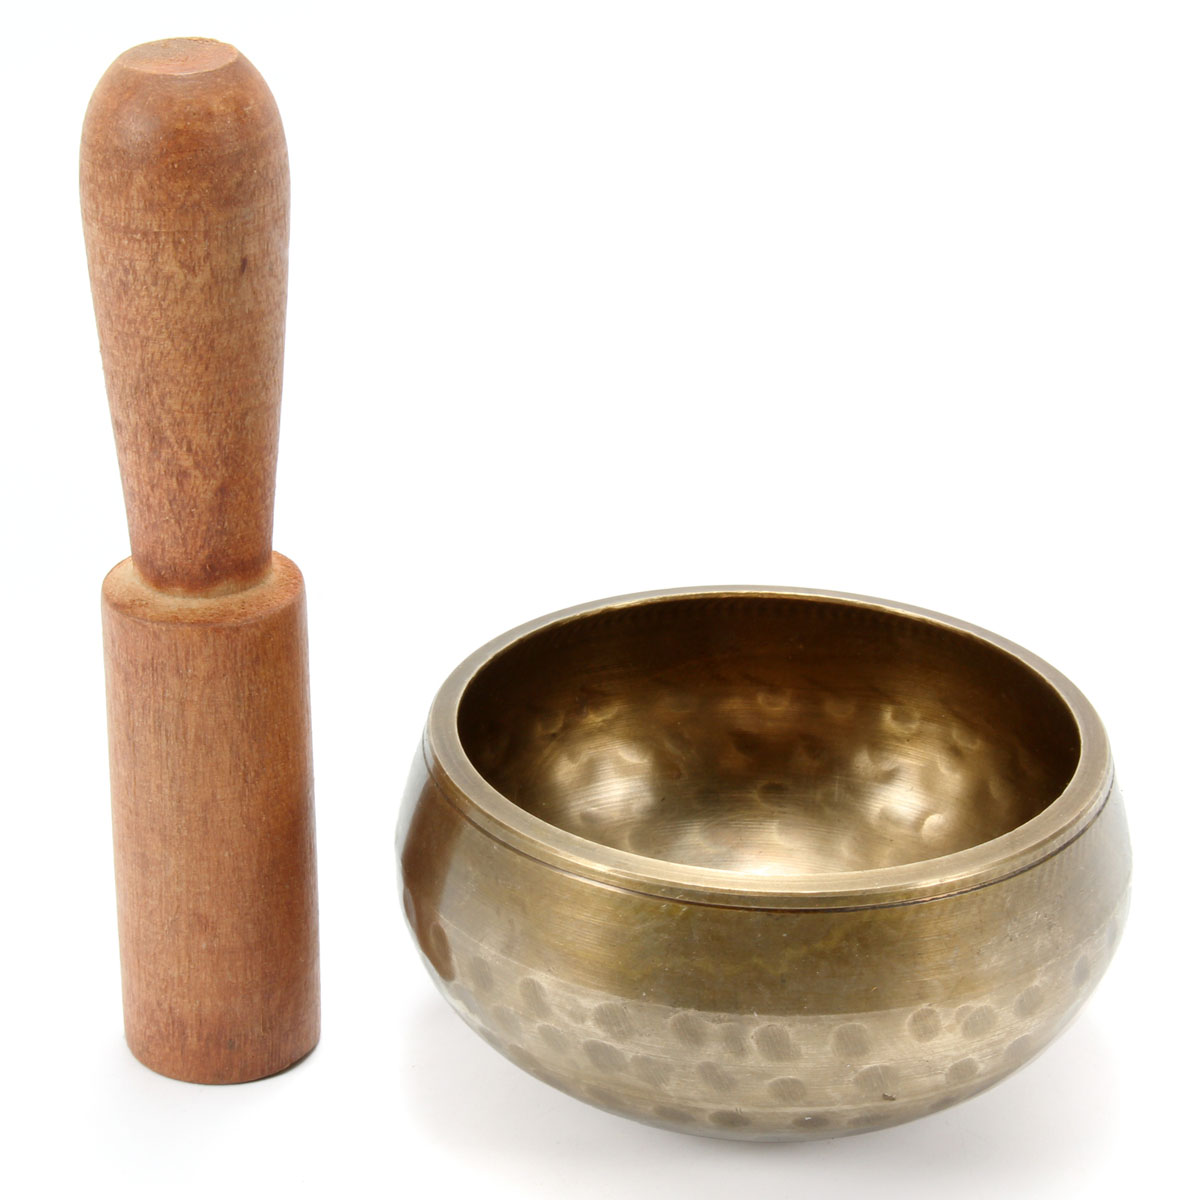 Buddhism Brass Yoga Tibetan Singing Bowl Wooden Hand Hammered Chakra Buddhist Meditation Home Decoration Ornaments